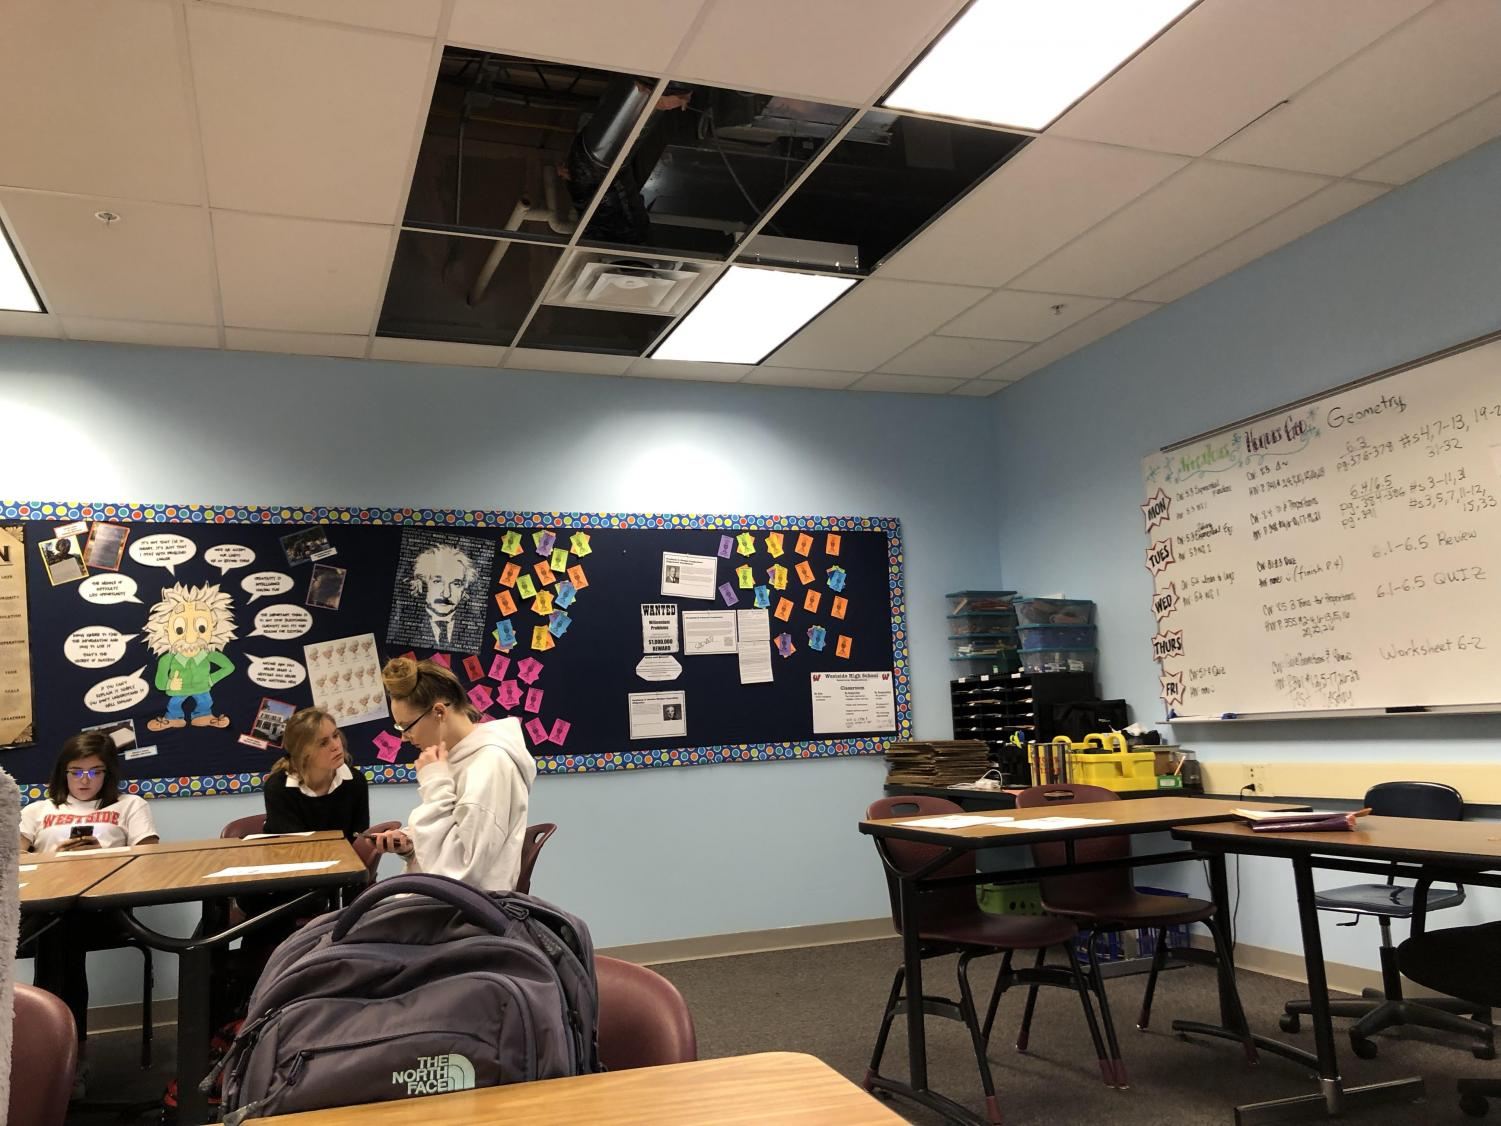 Damage in room 324 after the room flooded.